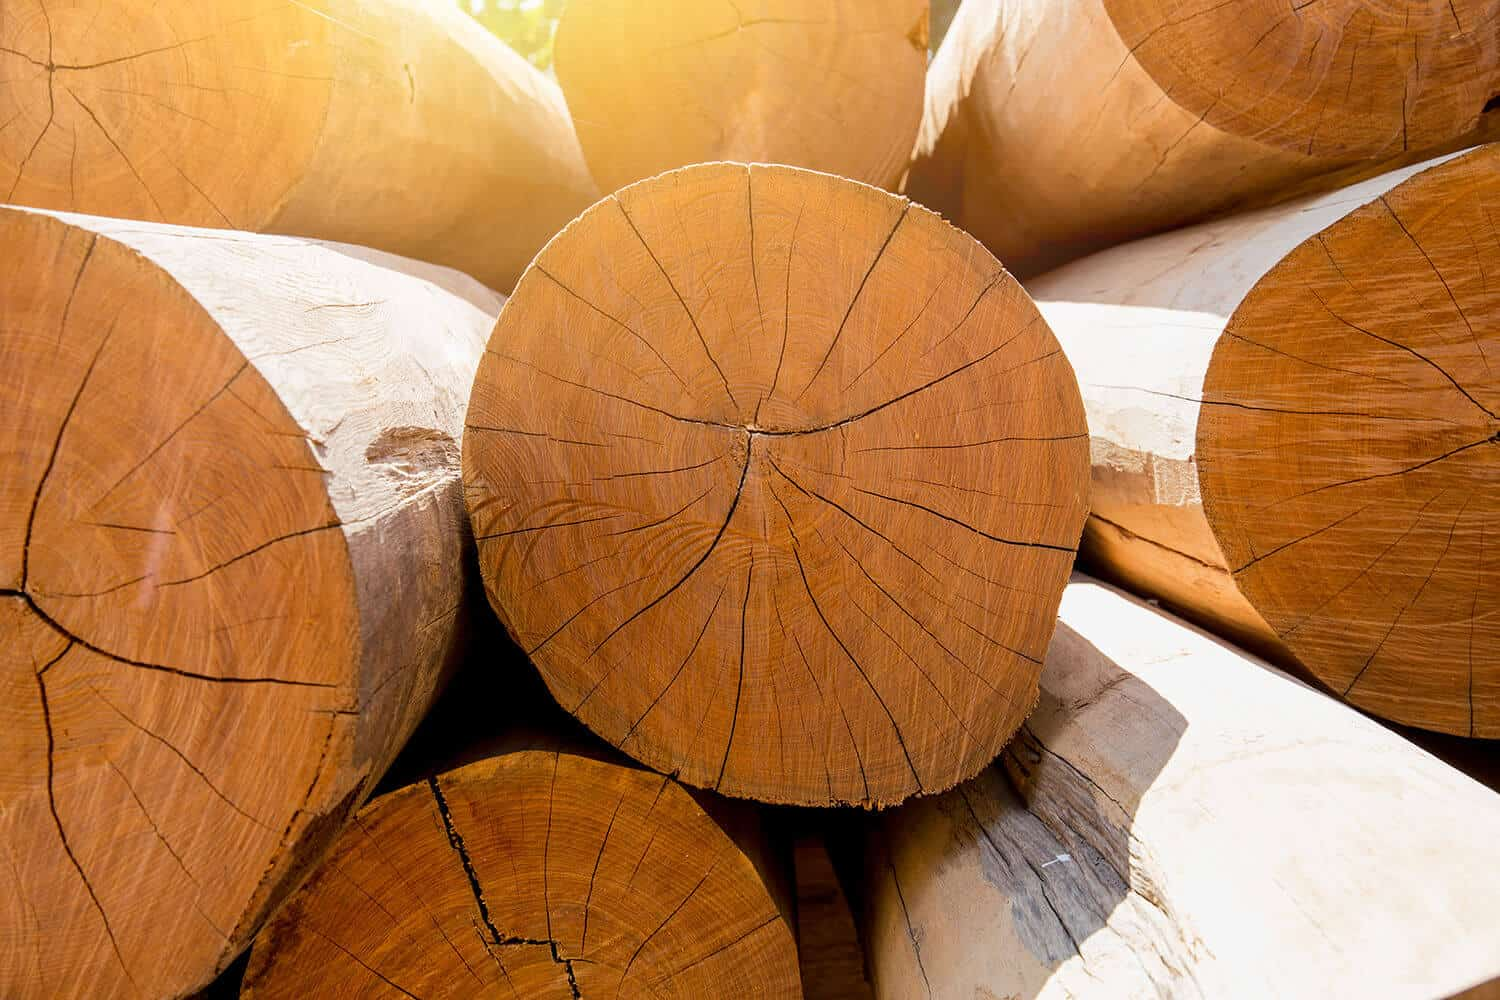 How To Dry Wood For Woodworking Step By Step